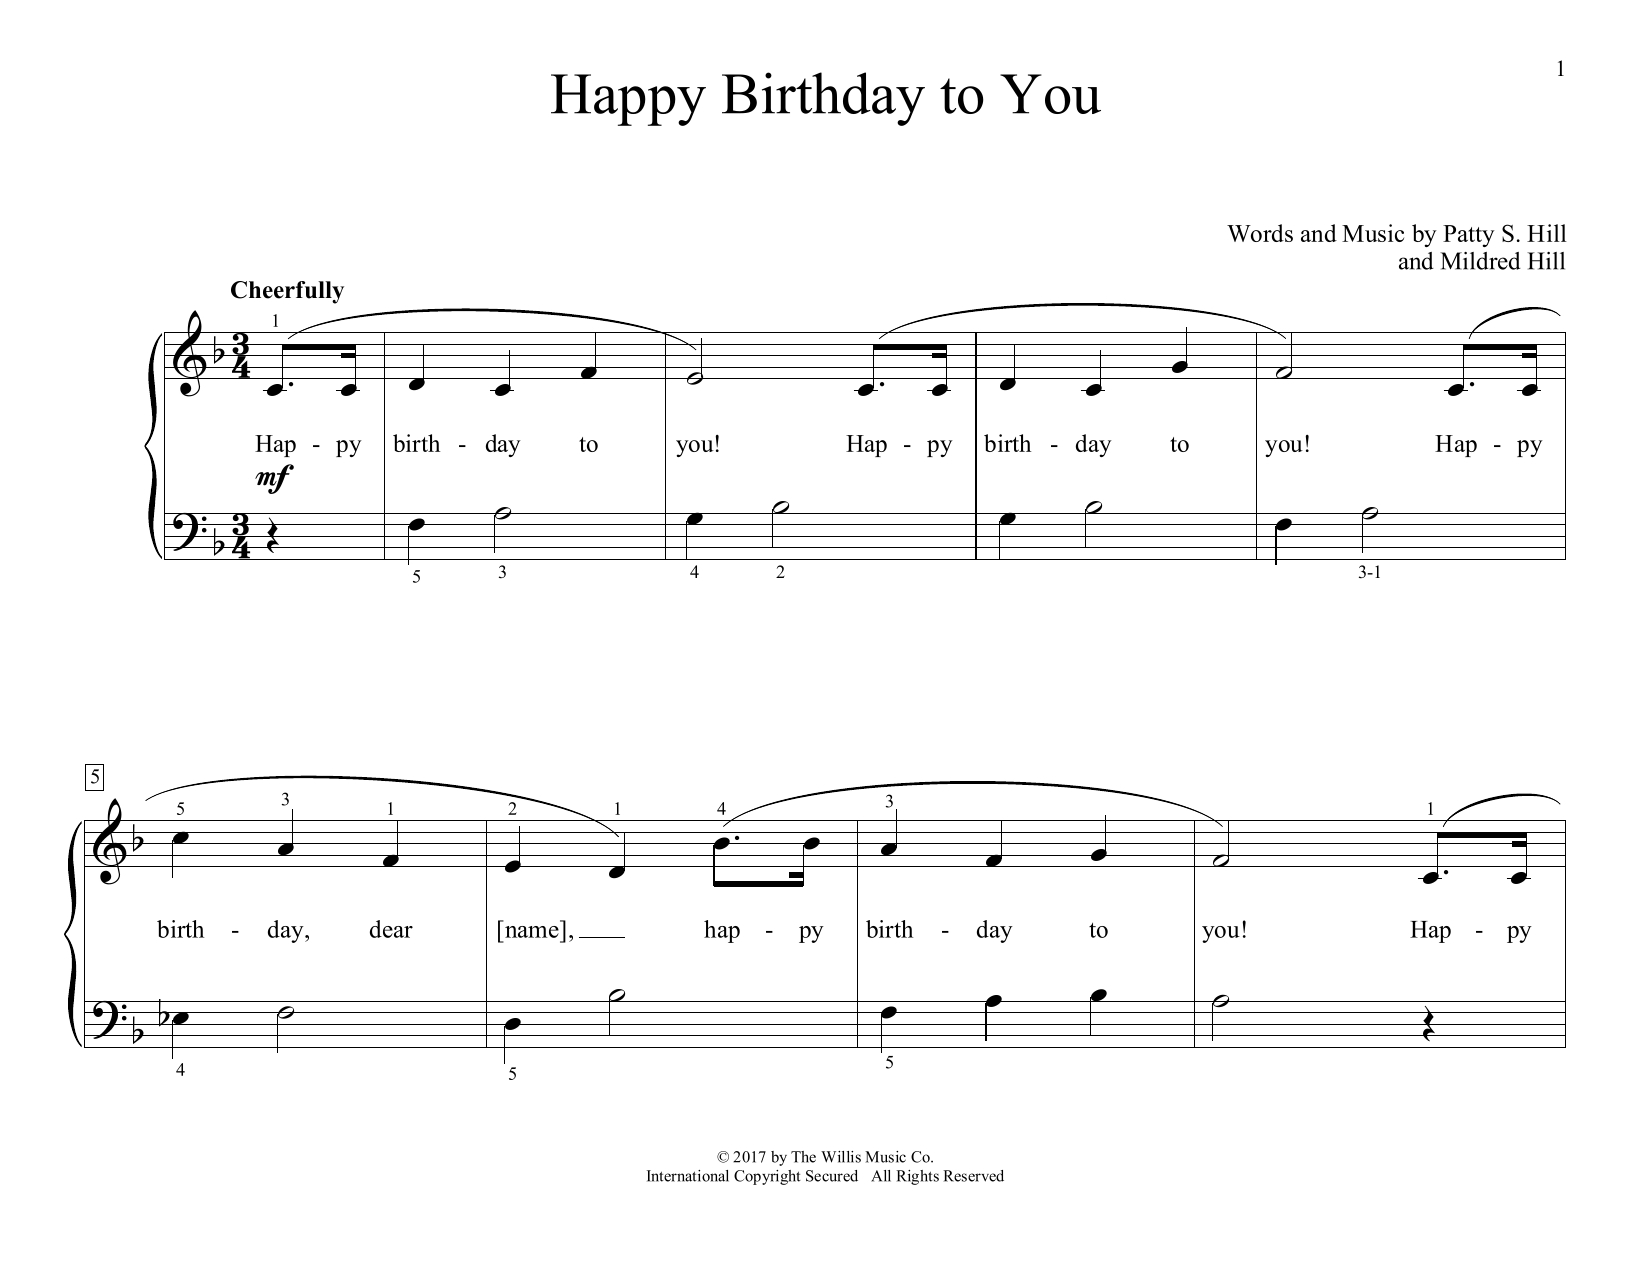 Happy Birthday To You (Arr. Christopher Hussey) Noten | Mildred Hill &  Patty Hill | Lehrmaterial Für Piano über Happy Birthday Noten Akkordeon